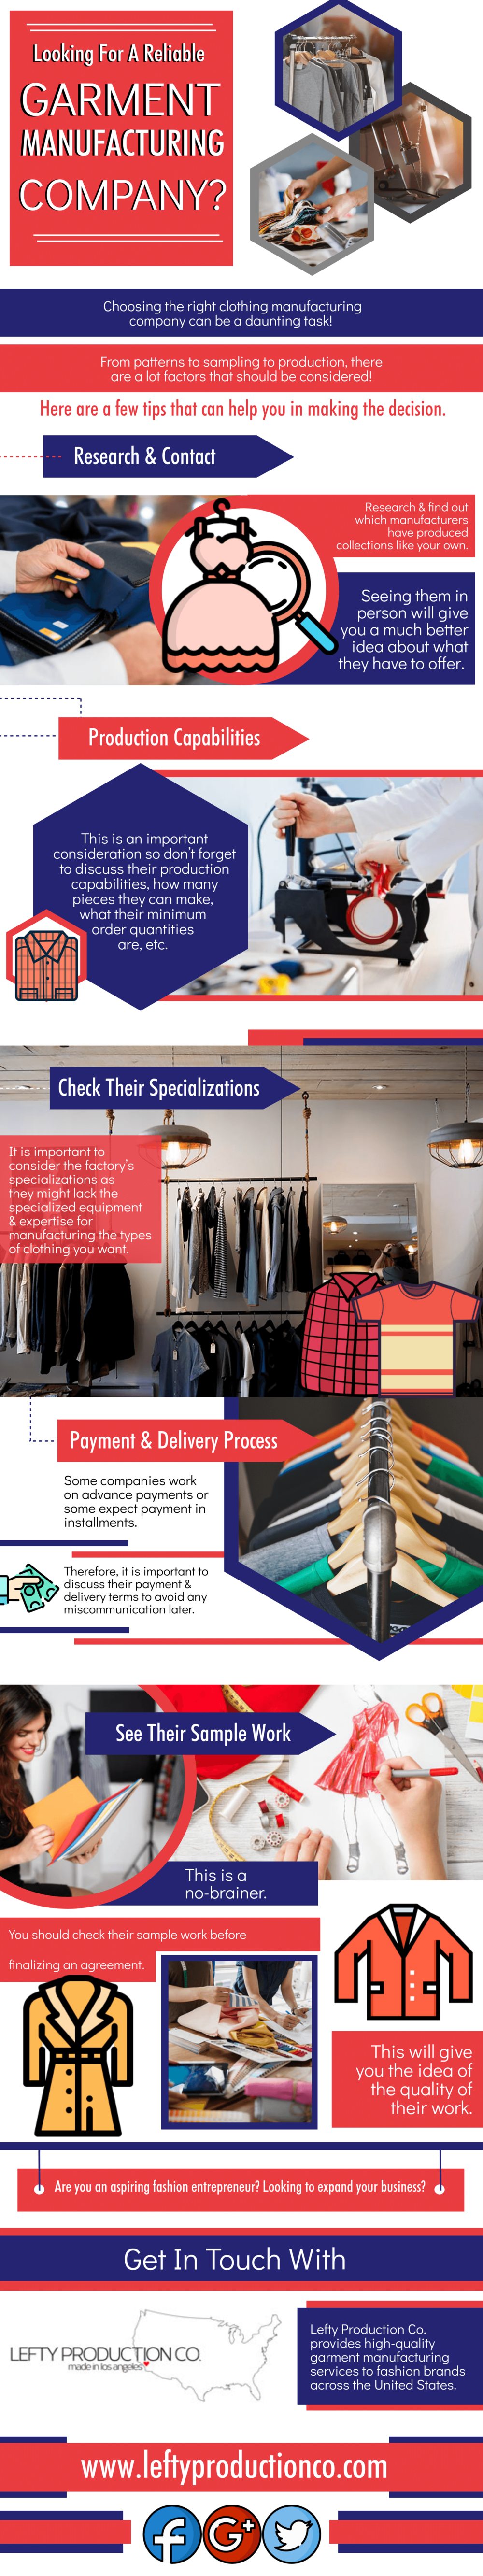 Looking For A Reliable Garment Manufacturing Company